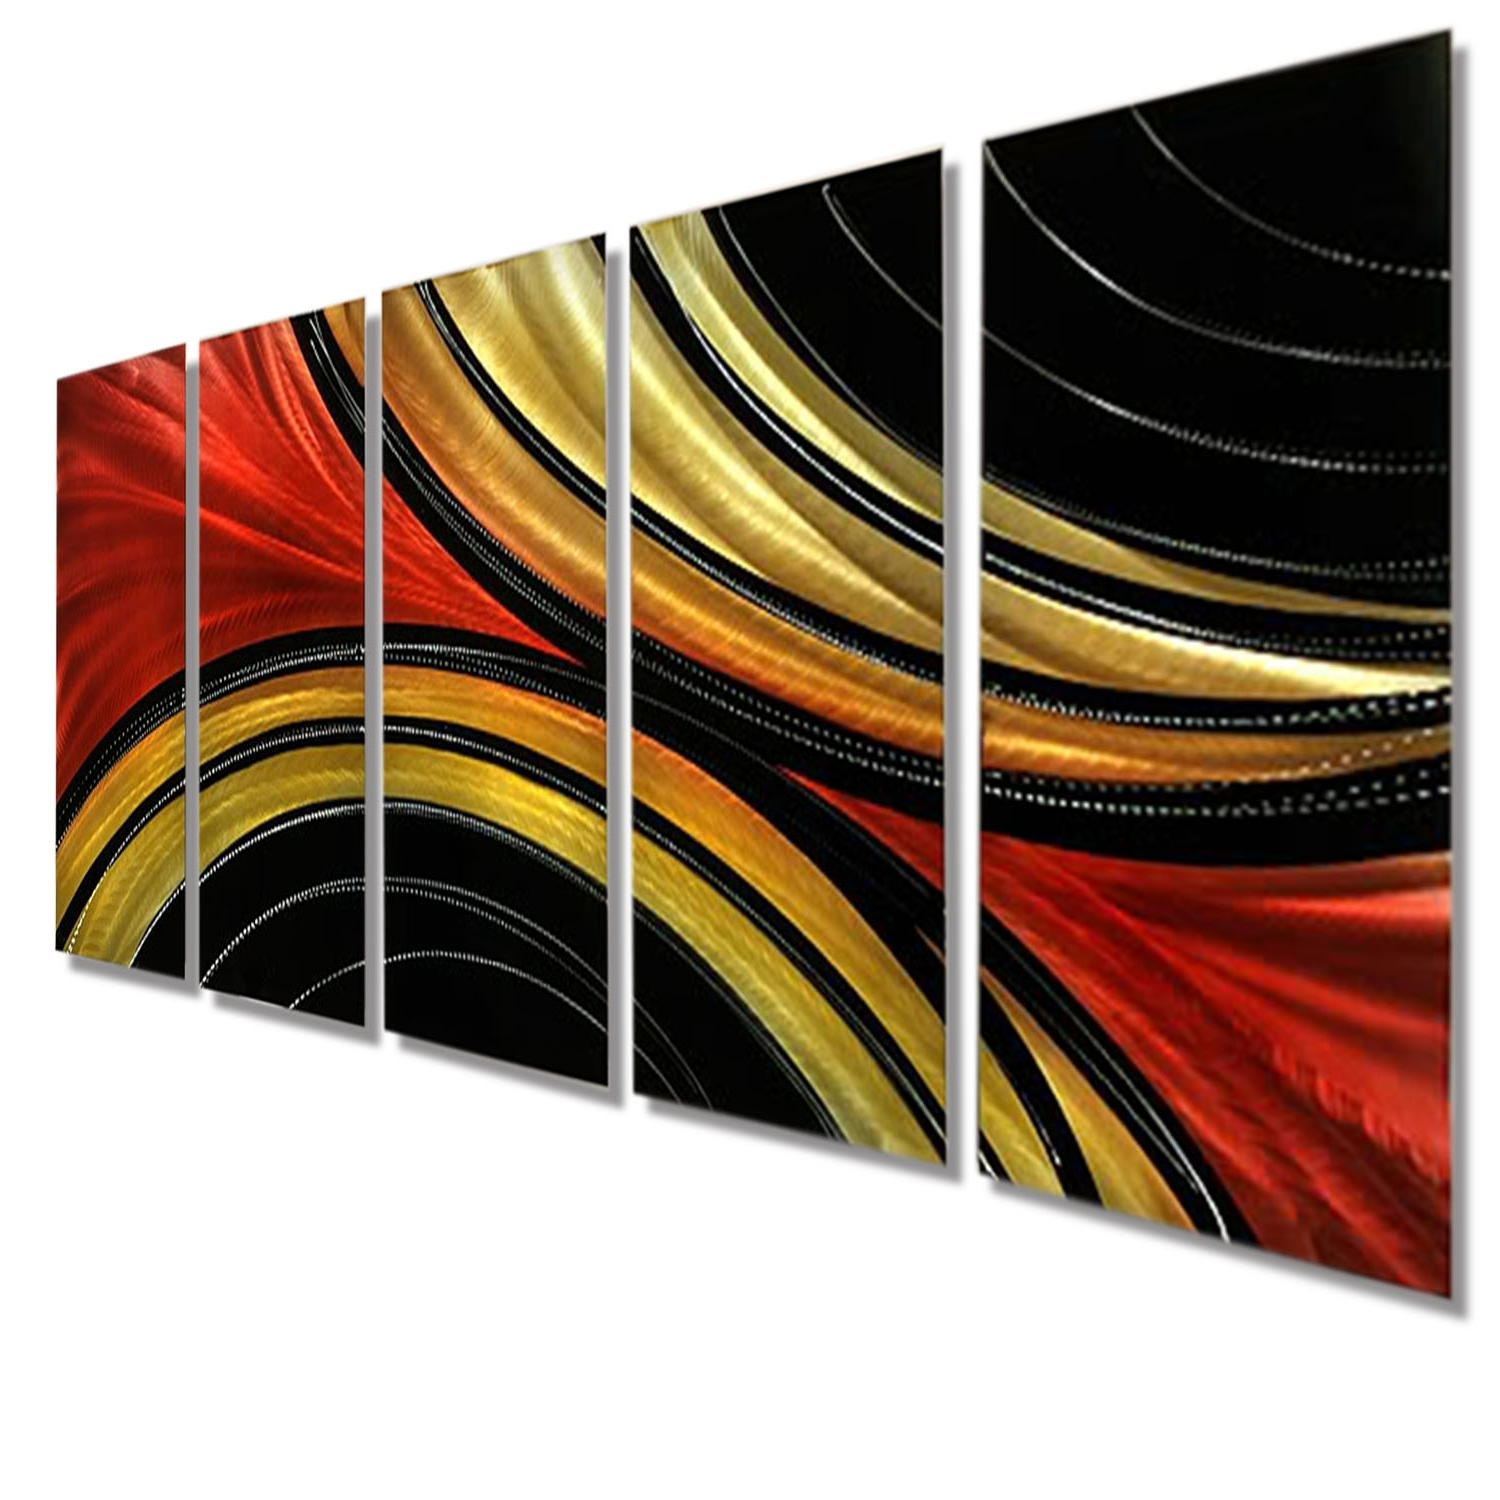 Solaris Xl – Massive Metal Abstract Red Black Gold Painting Wall In Most Up To Date Black And Gold Abstract Wall Art (View 12 of 15)